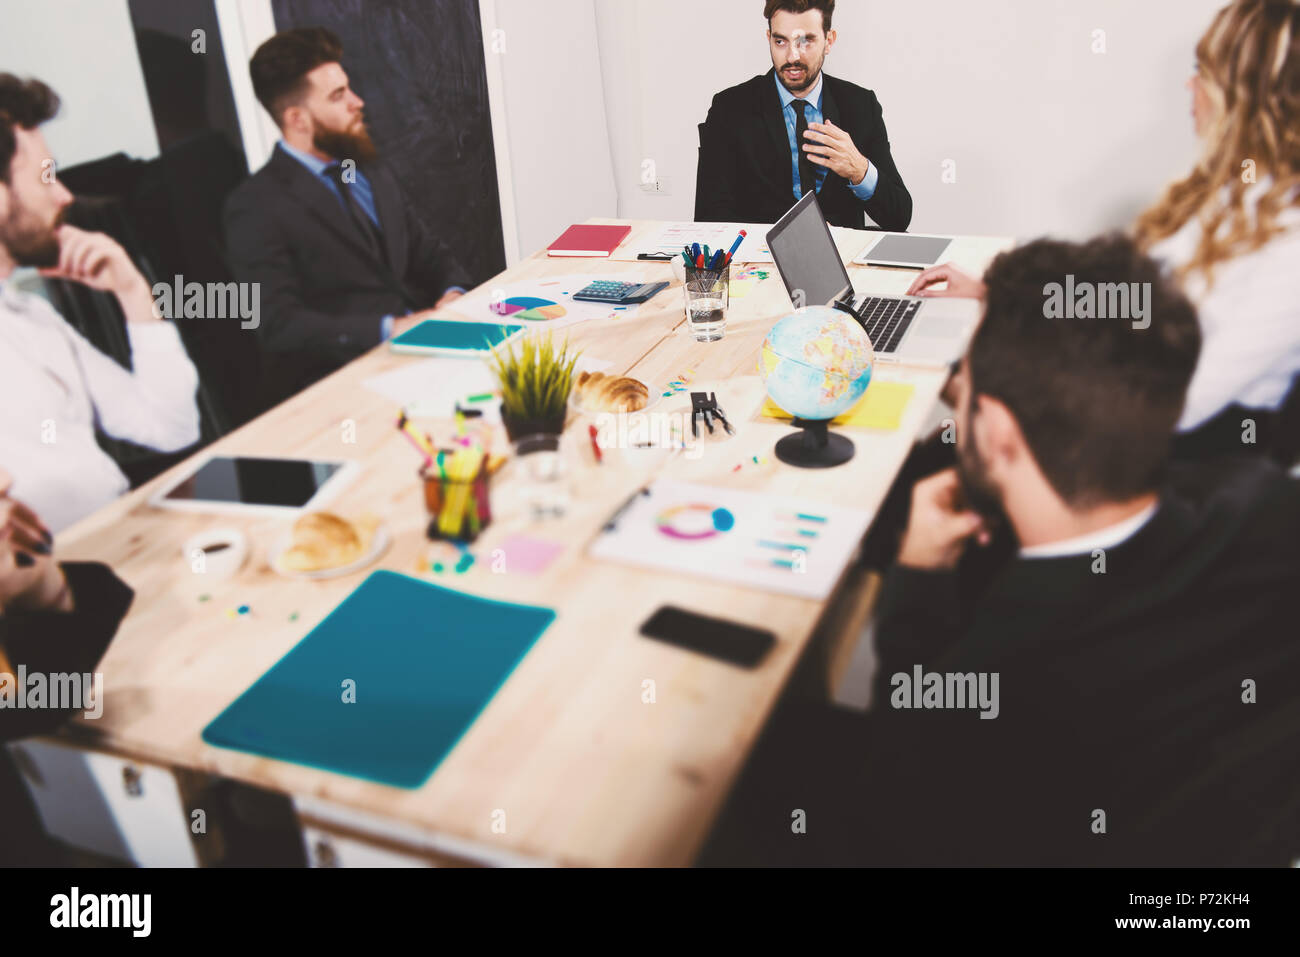 Team of businessmen work together in office. Concept of teamwork and partnership - Stock Image